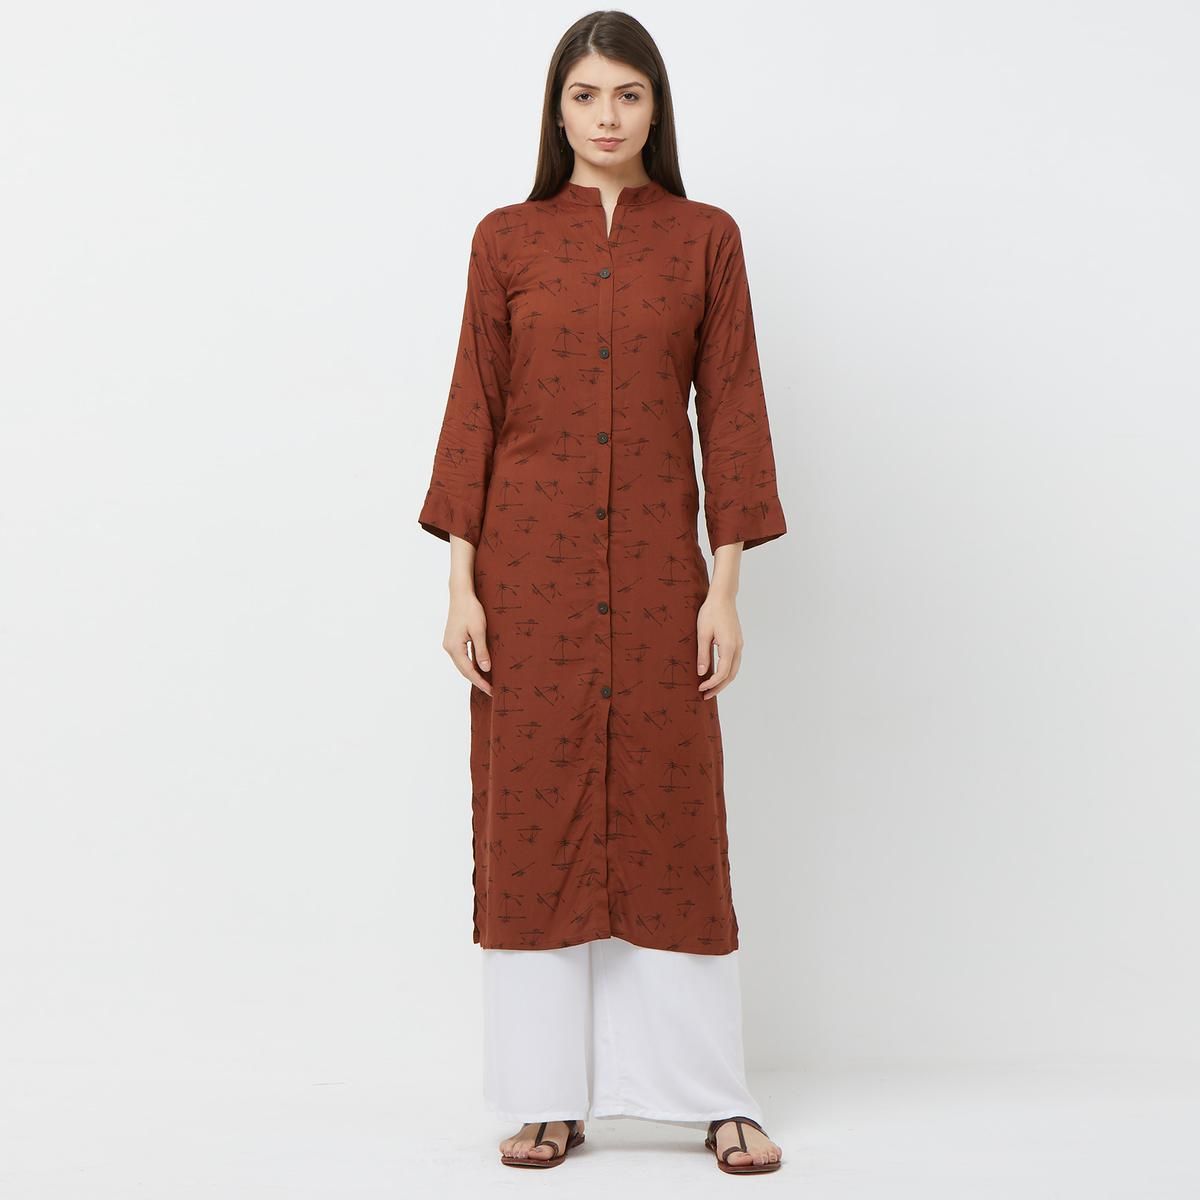 Prominent Brown Colored Casual Printed Rayon Long Kurti